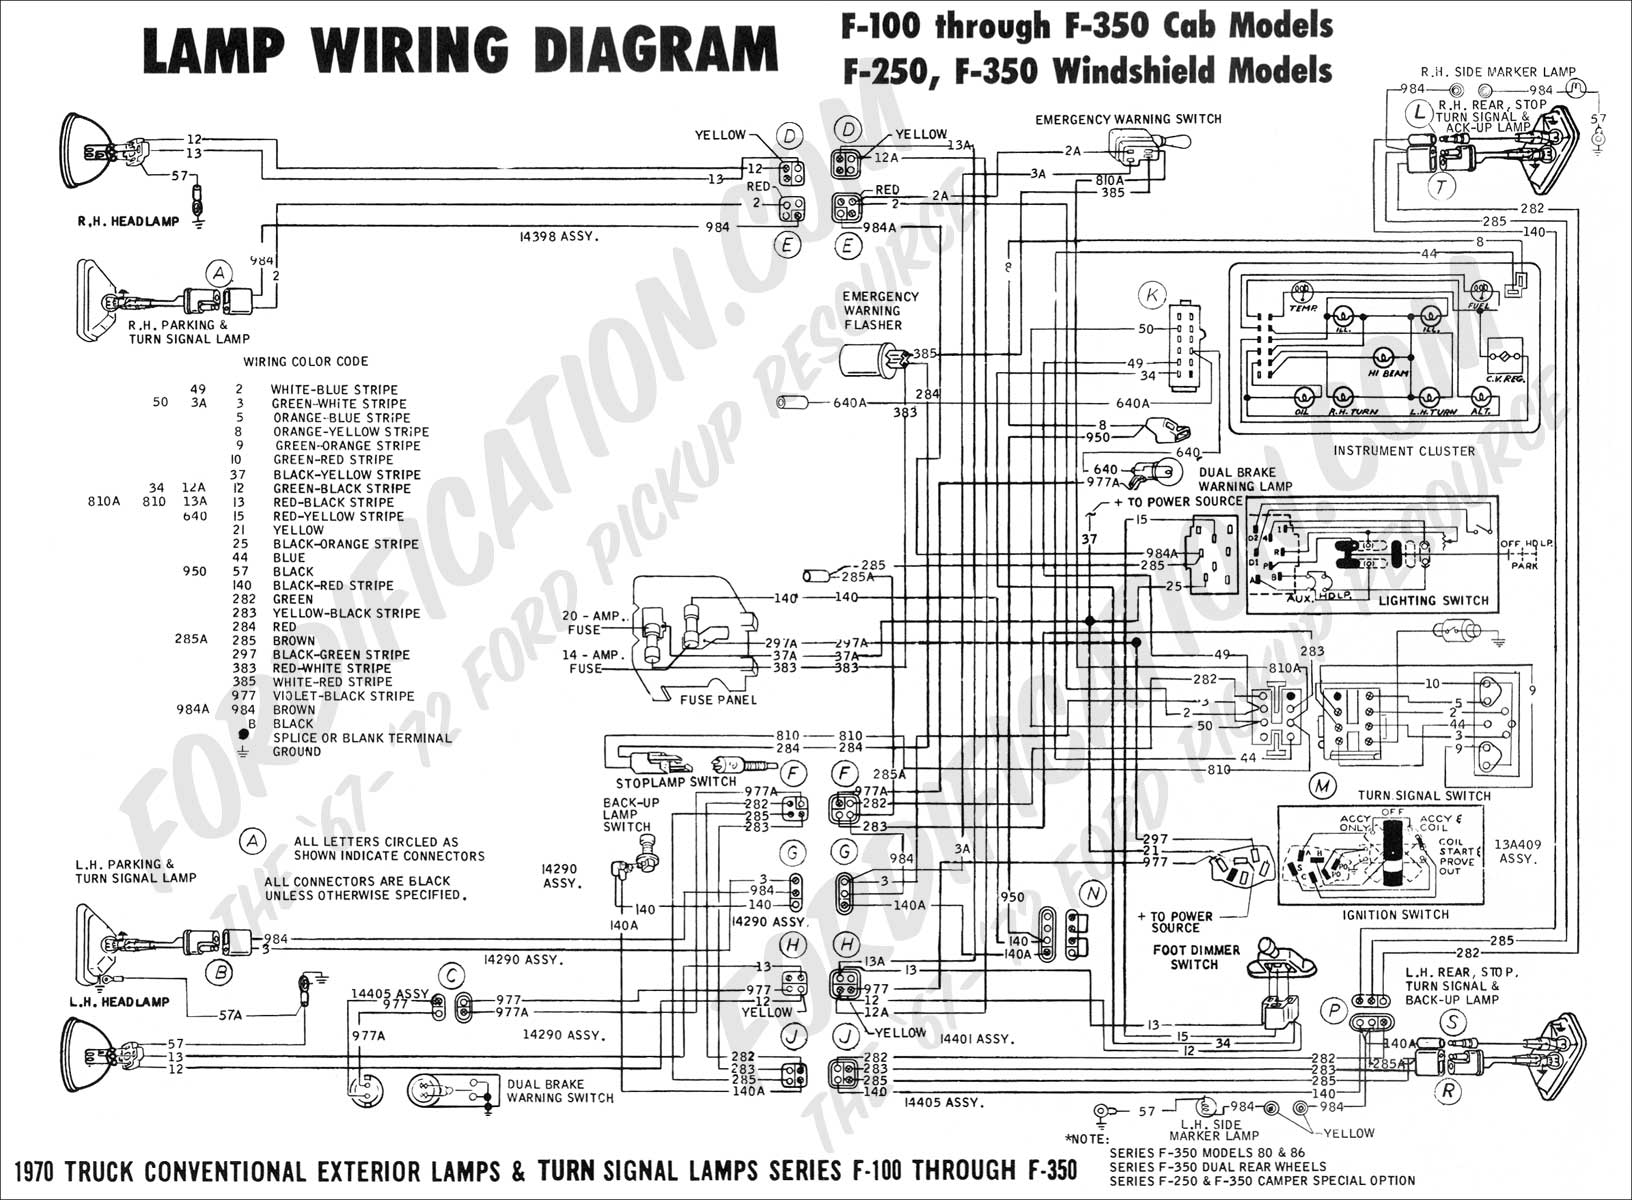 wiring diagram_70ext lights01 ford wiring harness diagrams ford wiring diagrams instruction 2012 ford f350 wiring diagram at bayanpartner.co